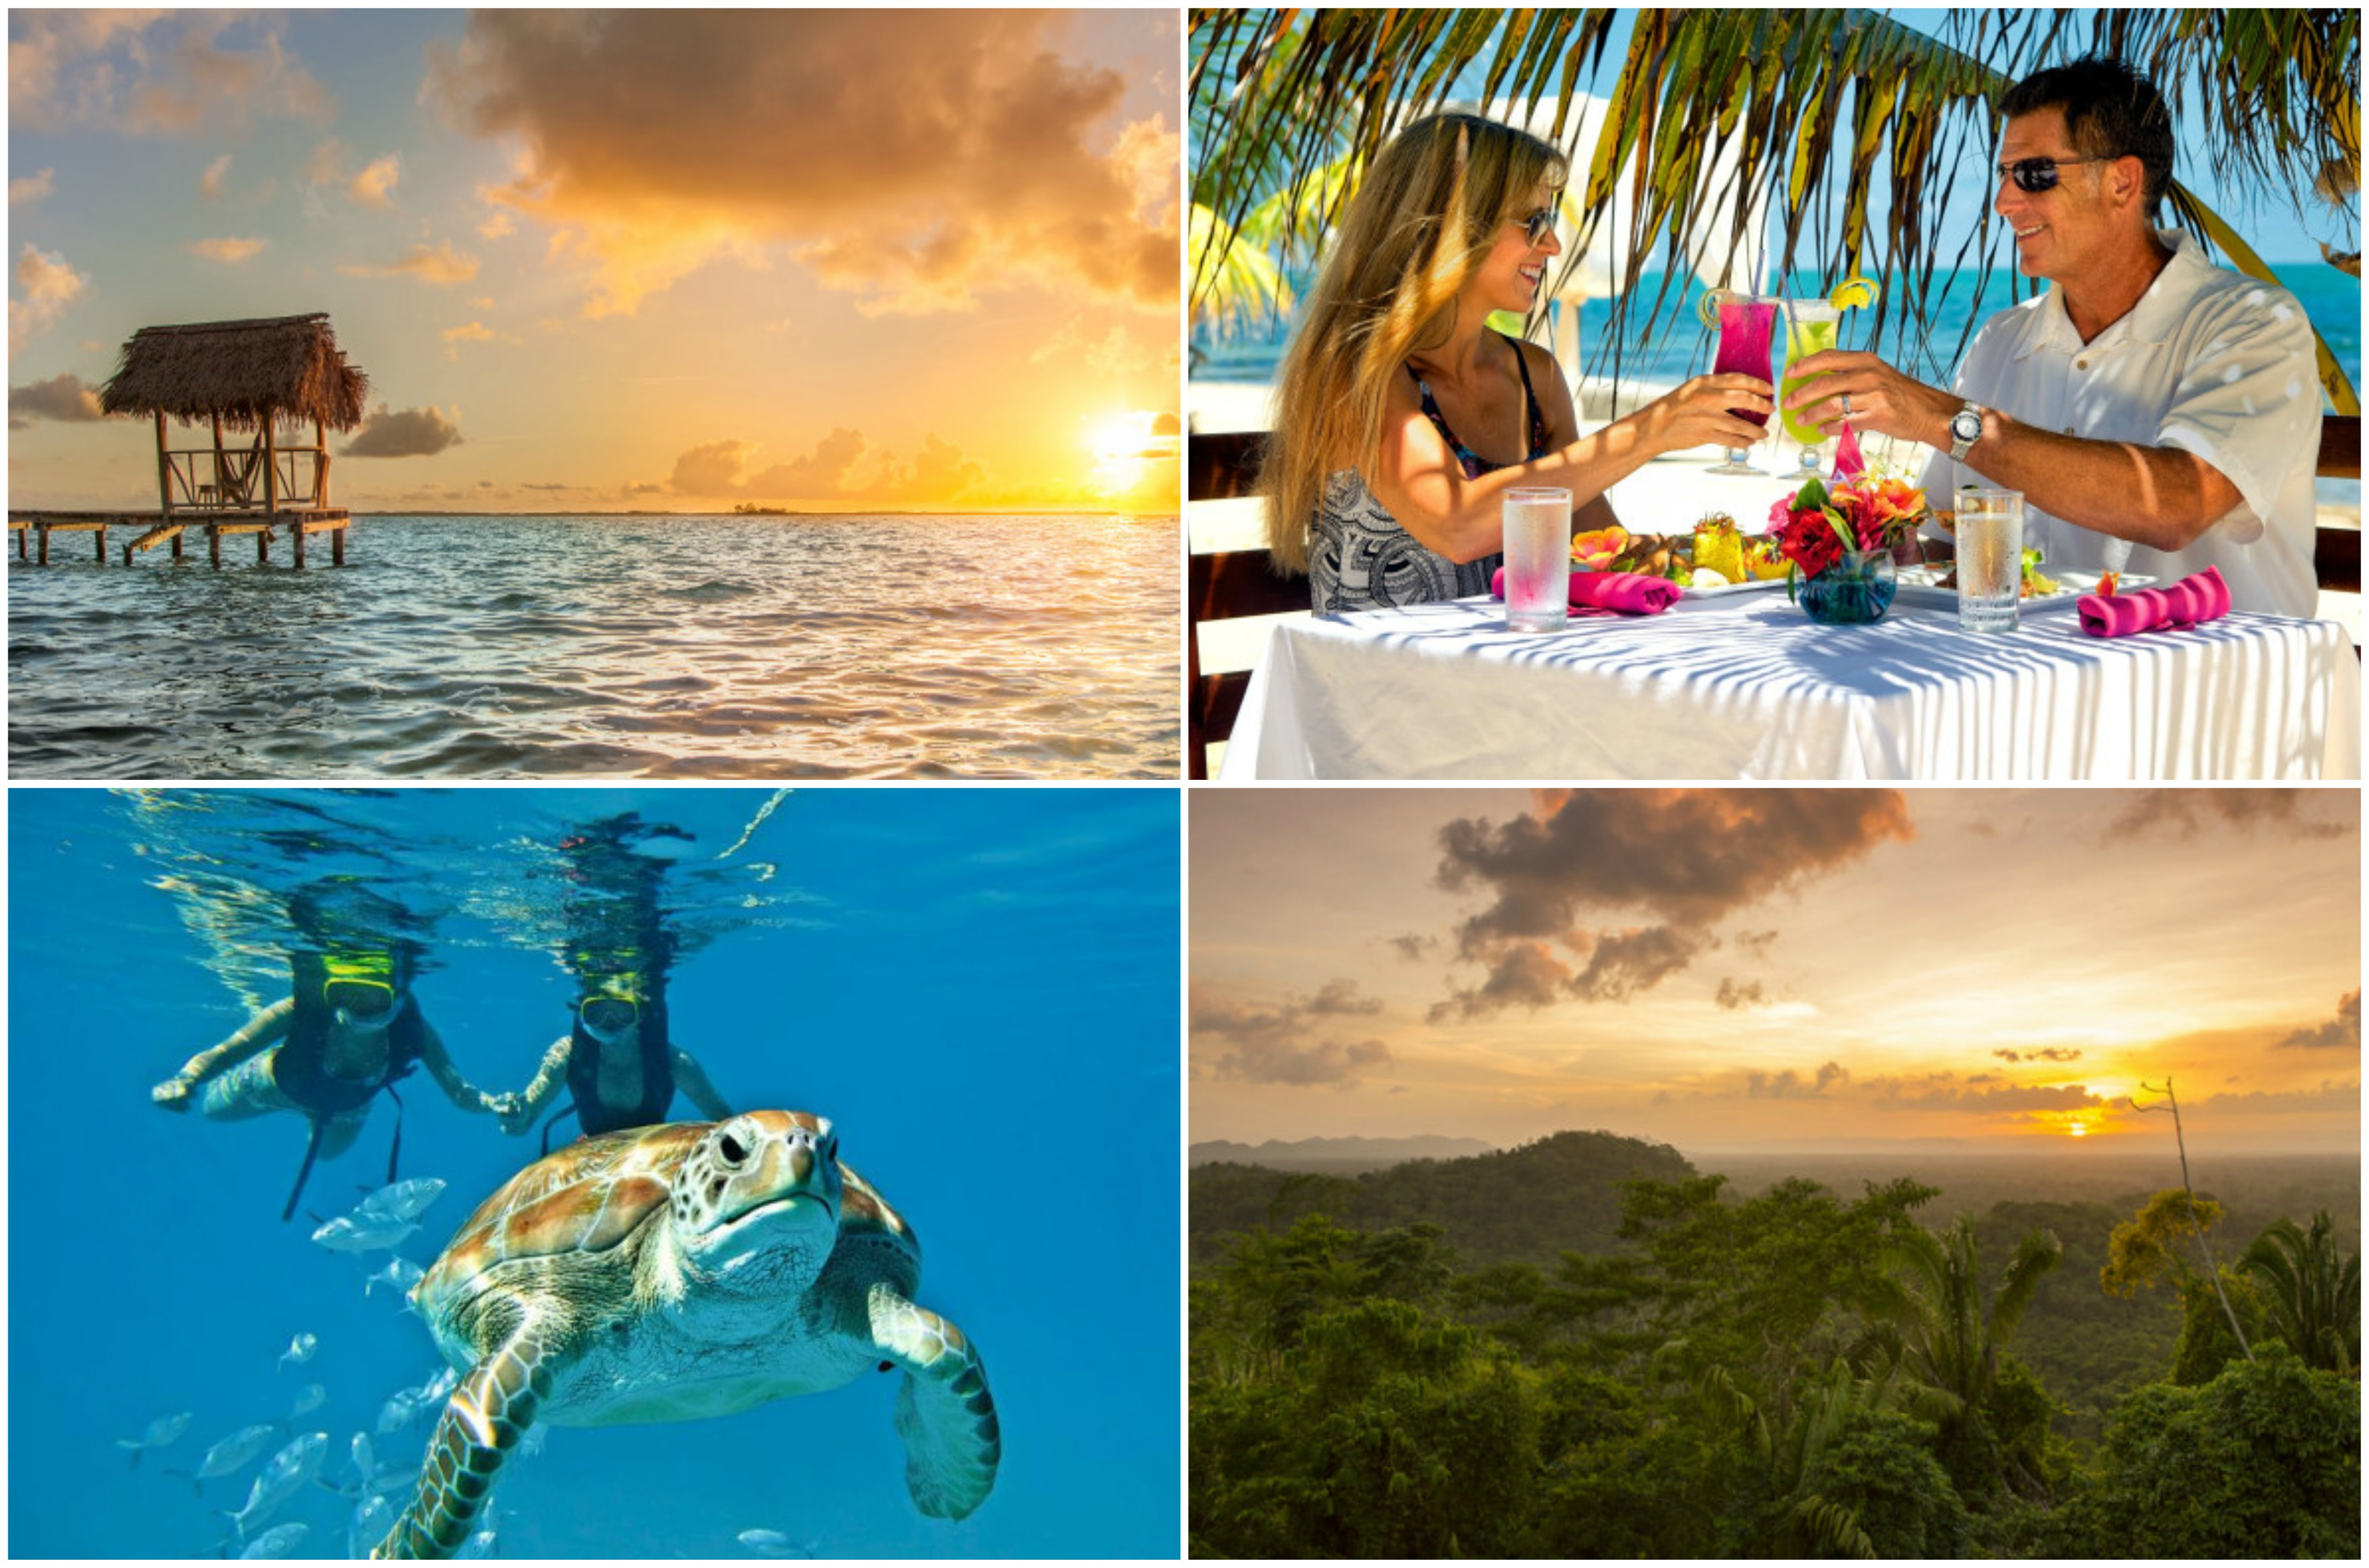 Sunset over the ocean | Couple sharing a romantic lunch on the beach | Couple snorkelling with turtle | Sunset over the rainforest in Belize